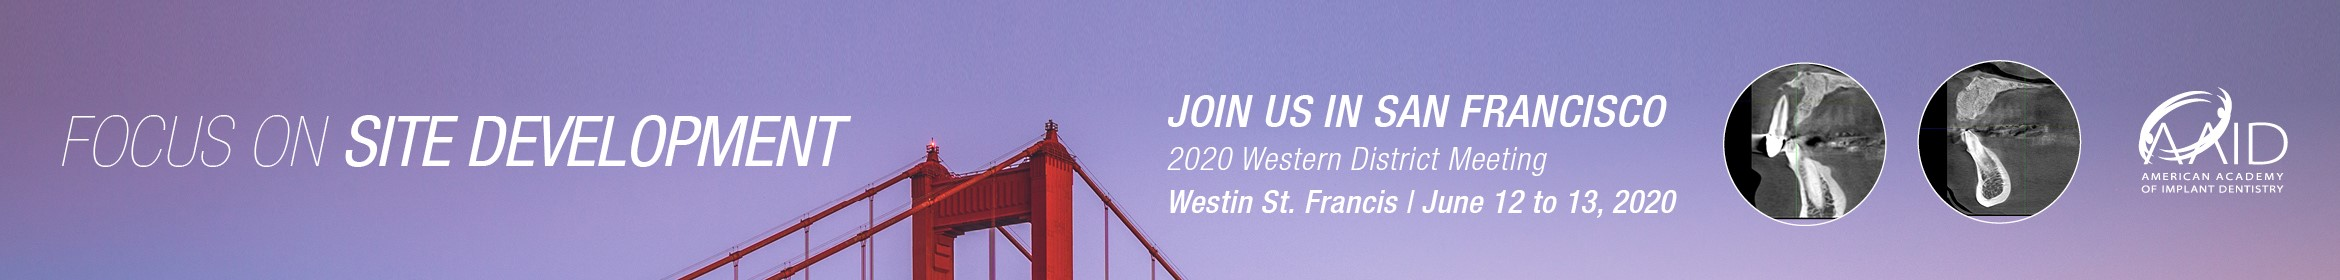 2020 Western District Meeting Main banner